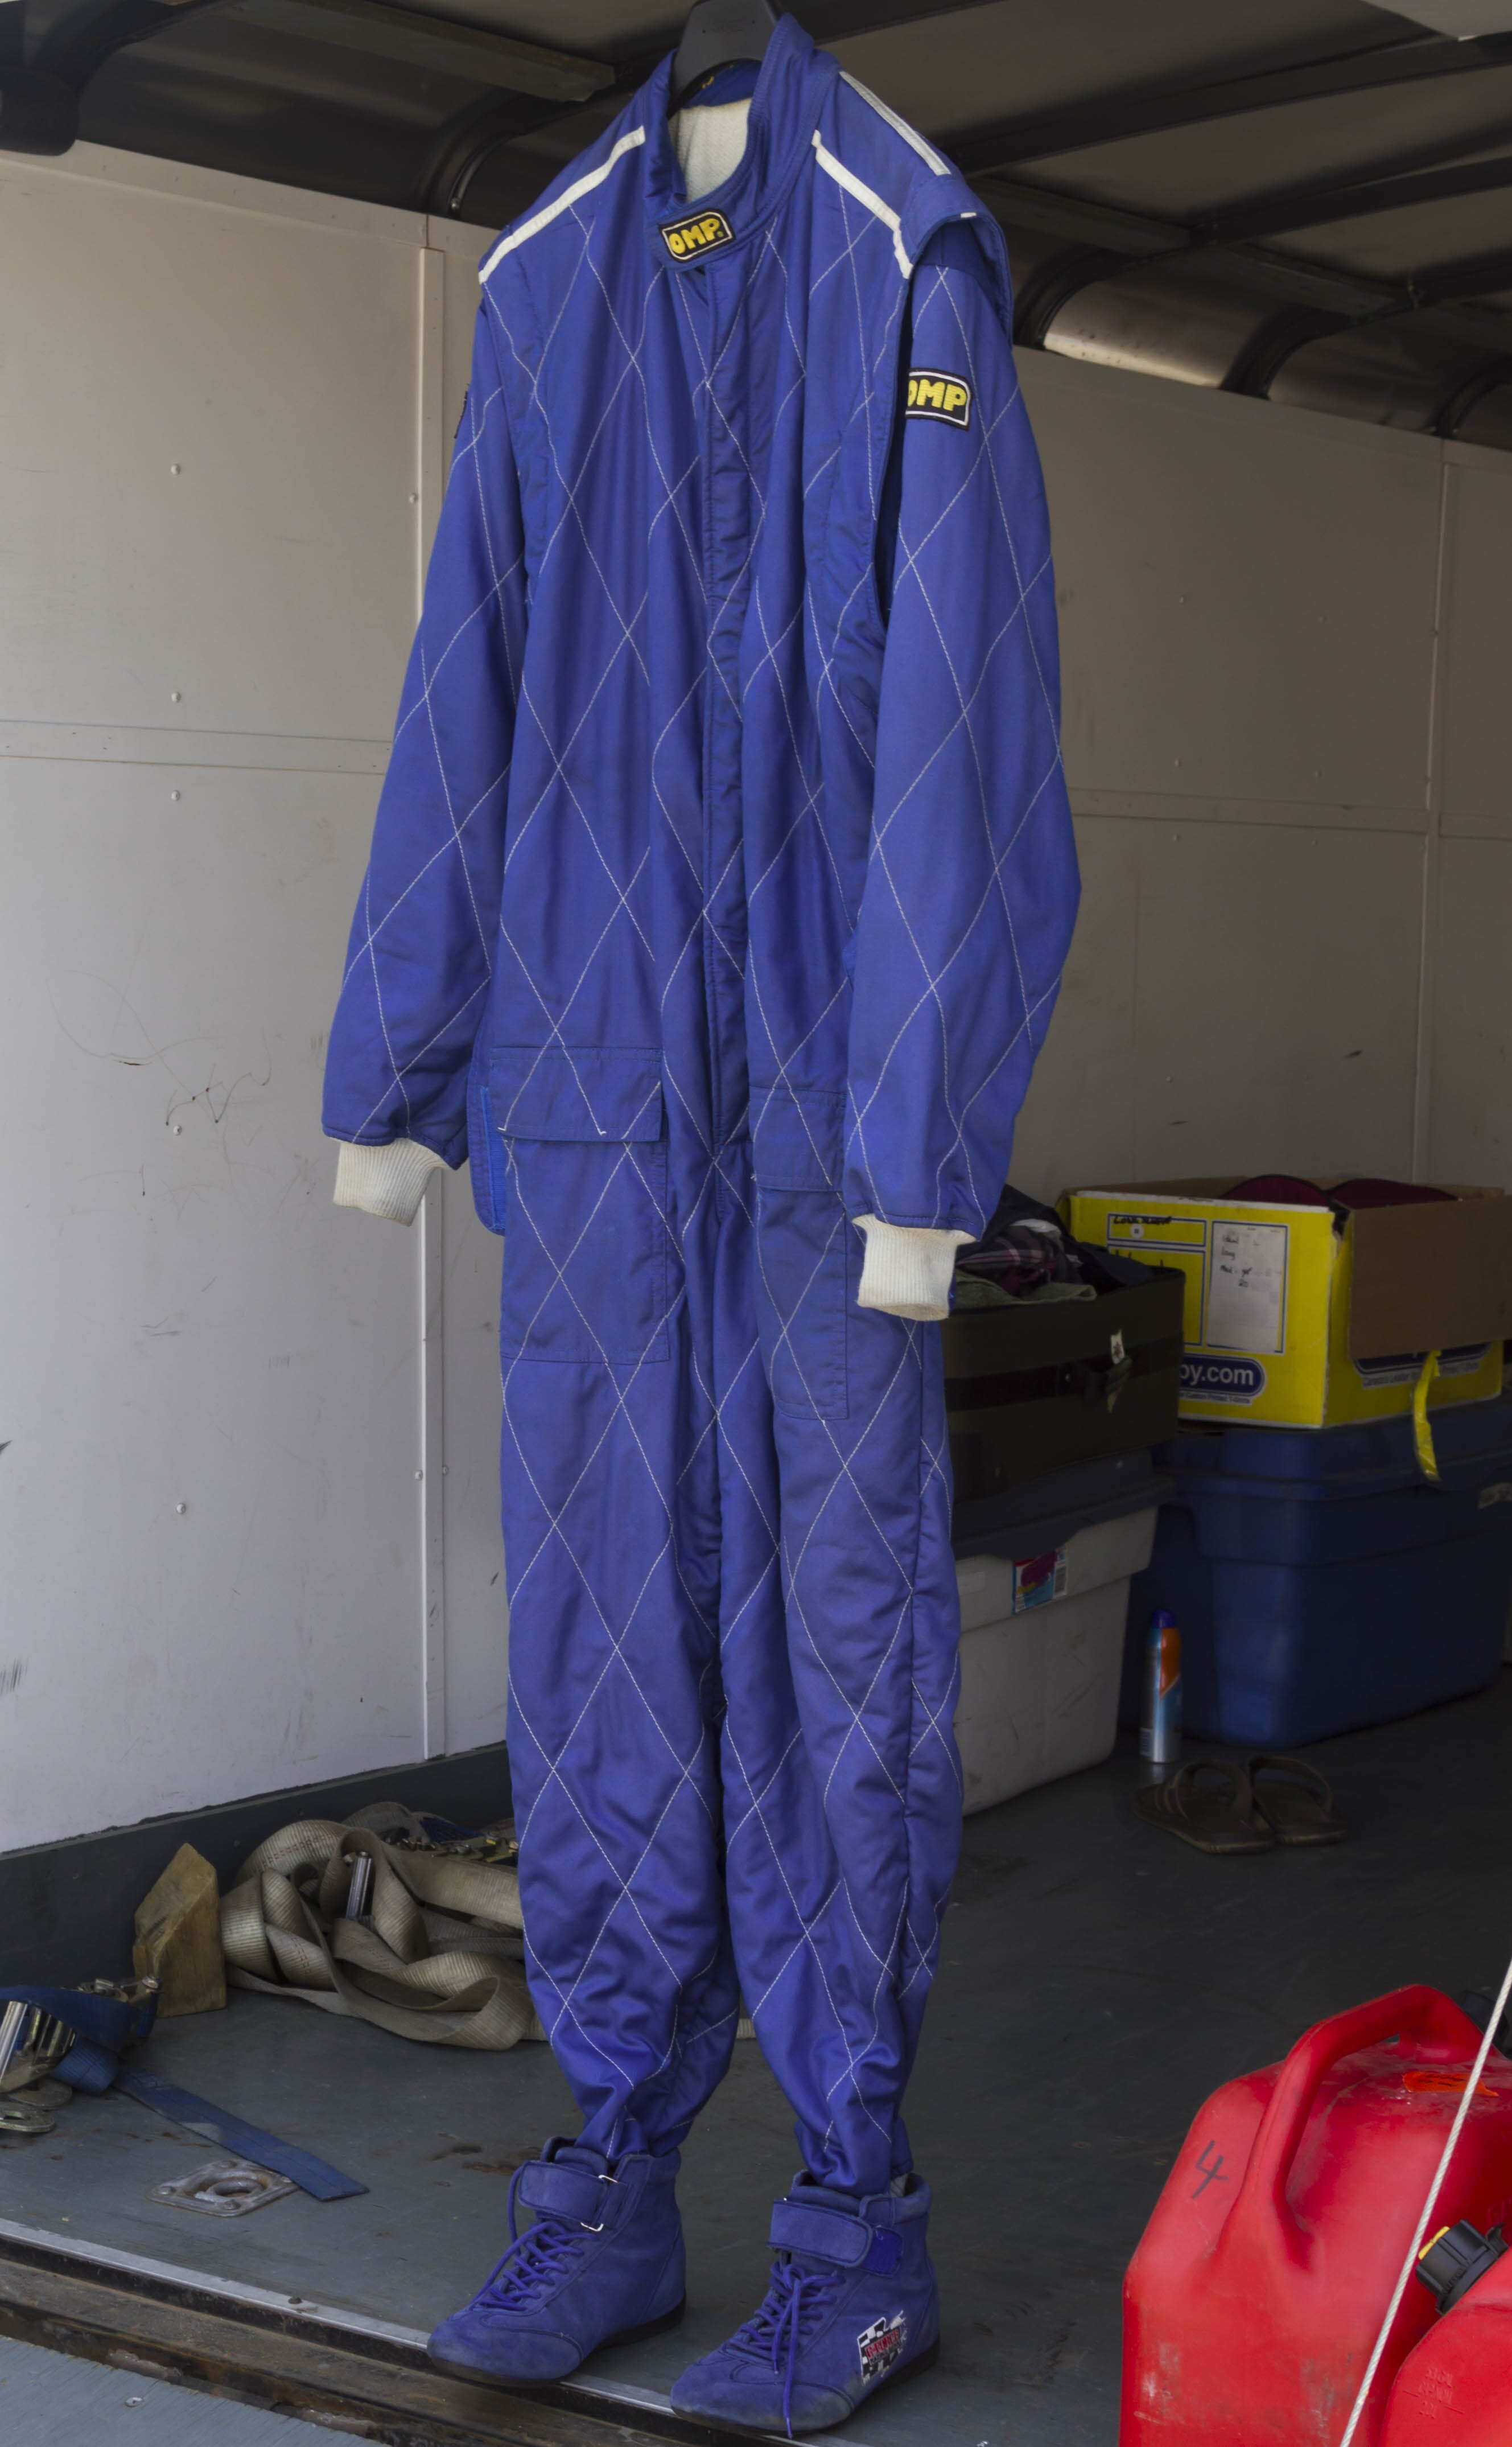 Racing suit is ready for action